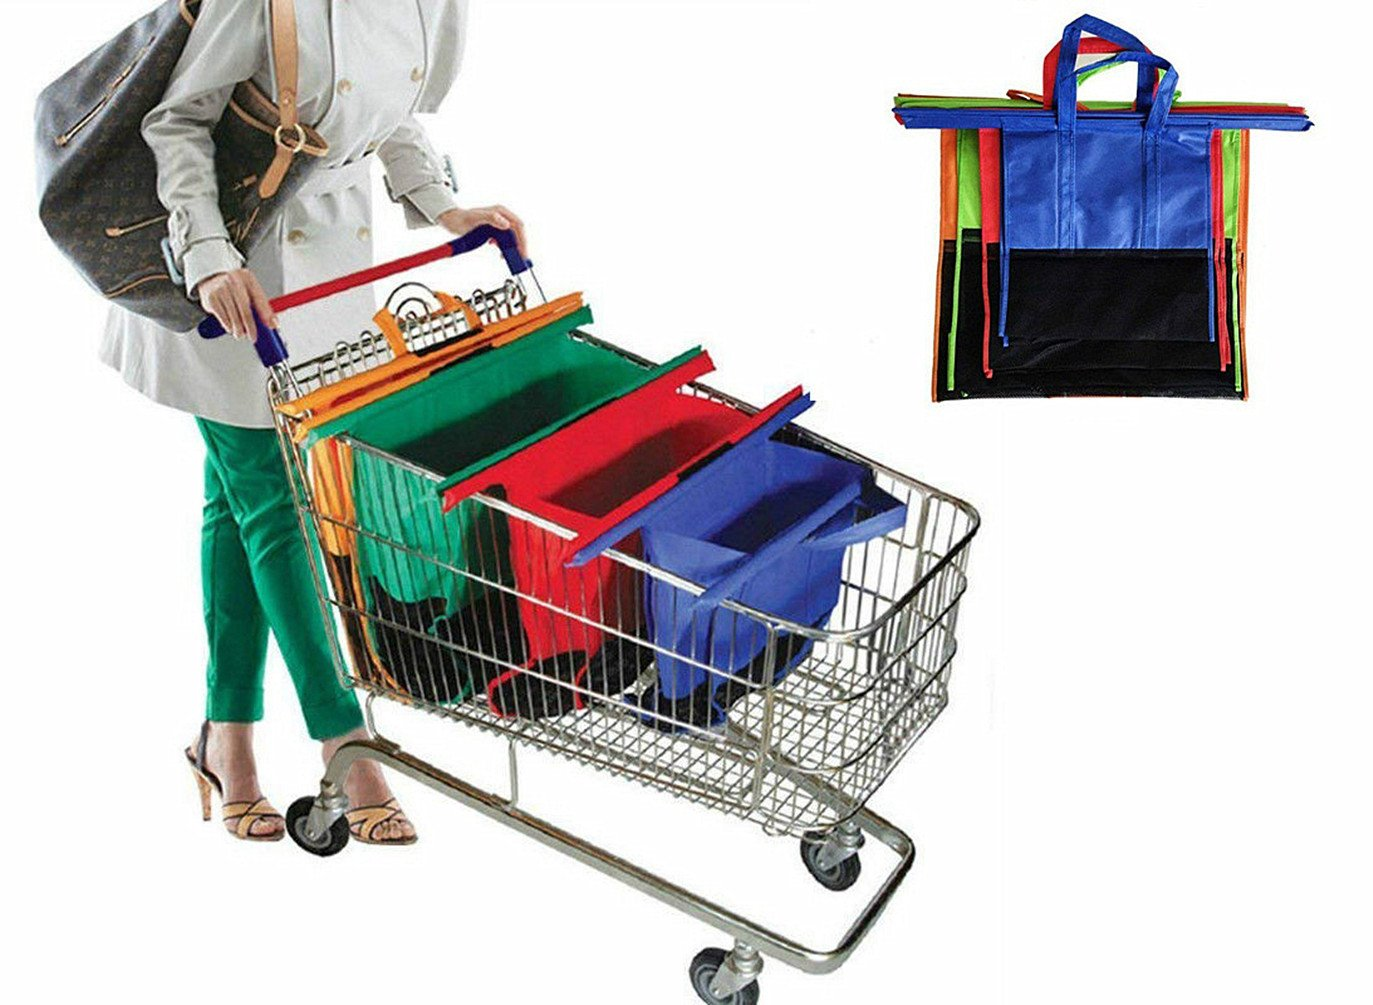 ABTP 4 Piece Grocery Shopping Cart Trolley Bags Foldable Reusable Eco Friendly Shopping Bags Shopping Cart & Grocery Organizer 4 Color